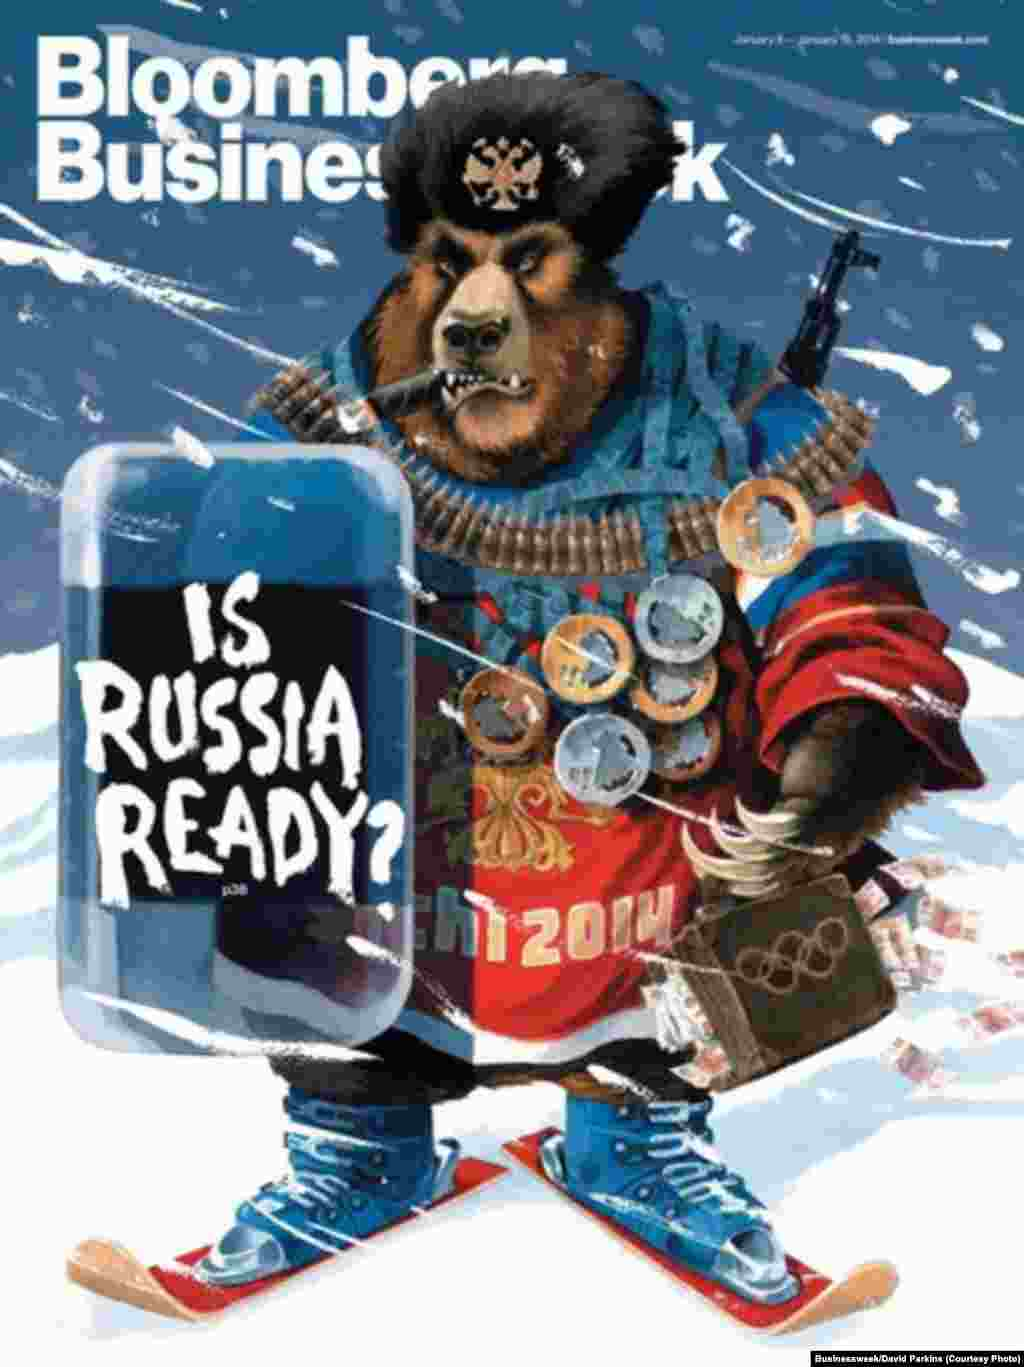 "For Joshua Yaffa's cover story about corruption in preparation for the winter games, ""Bloomberg Businessweek"" uses a bear -- often seen as a symbol for Russia. The magazine explained that other cover ideas fell flat."